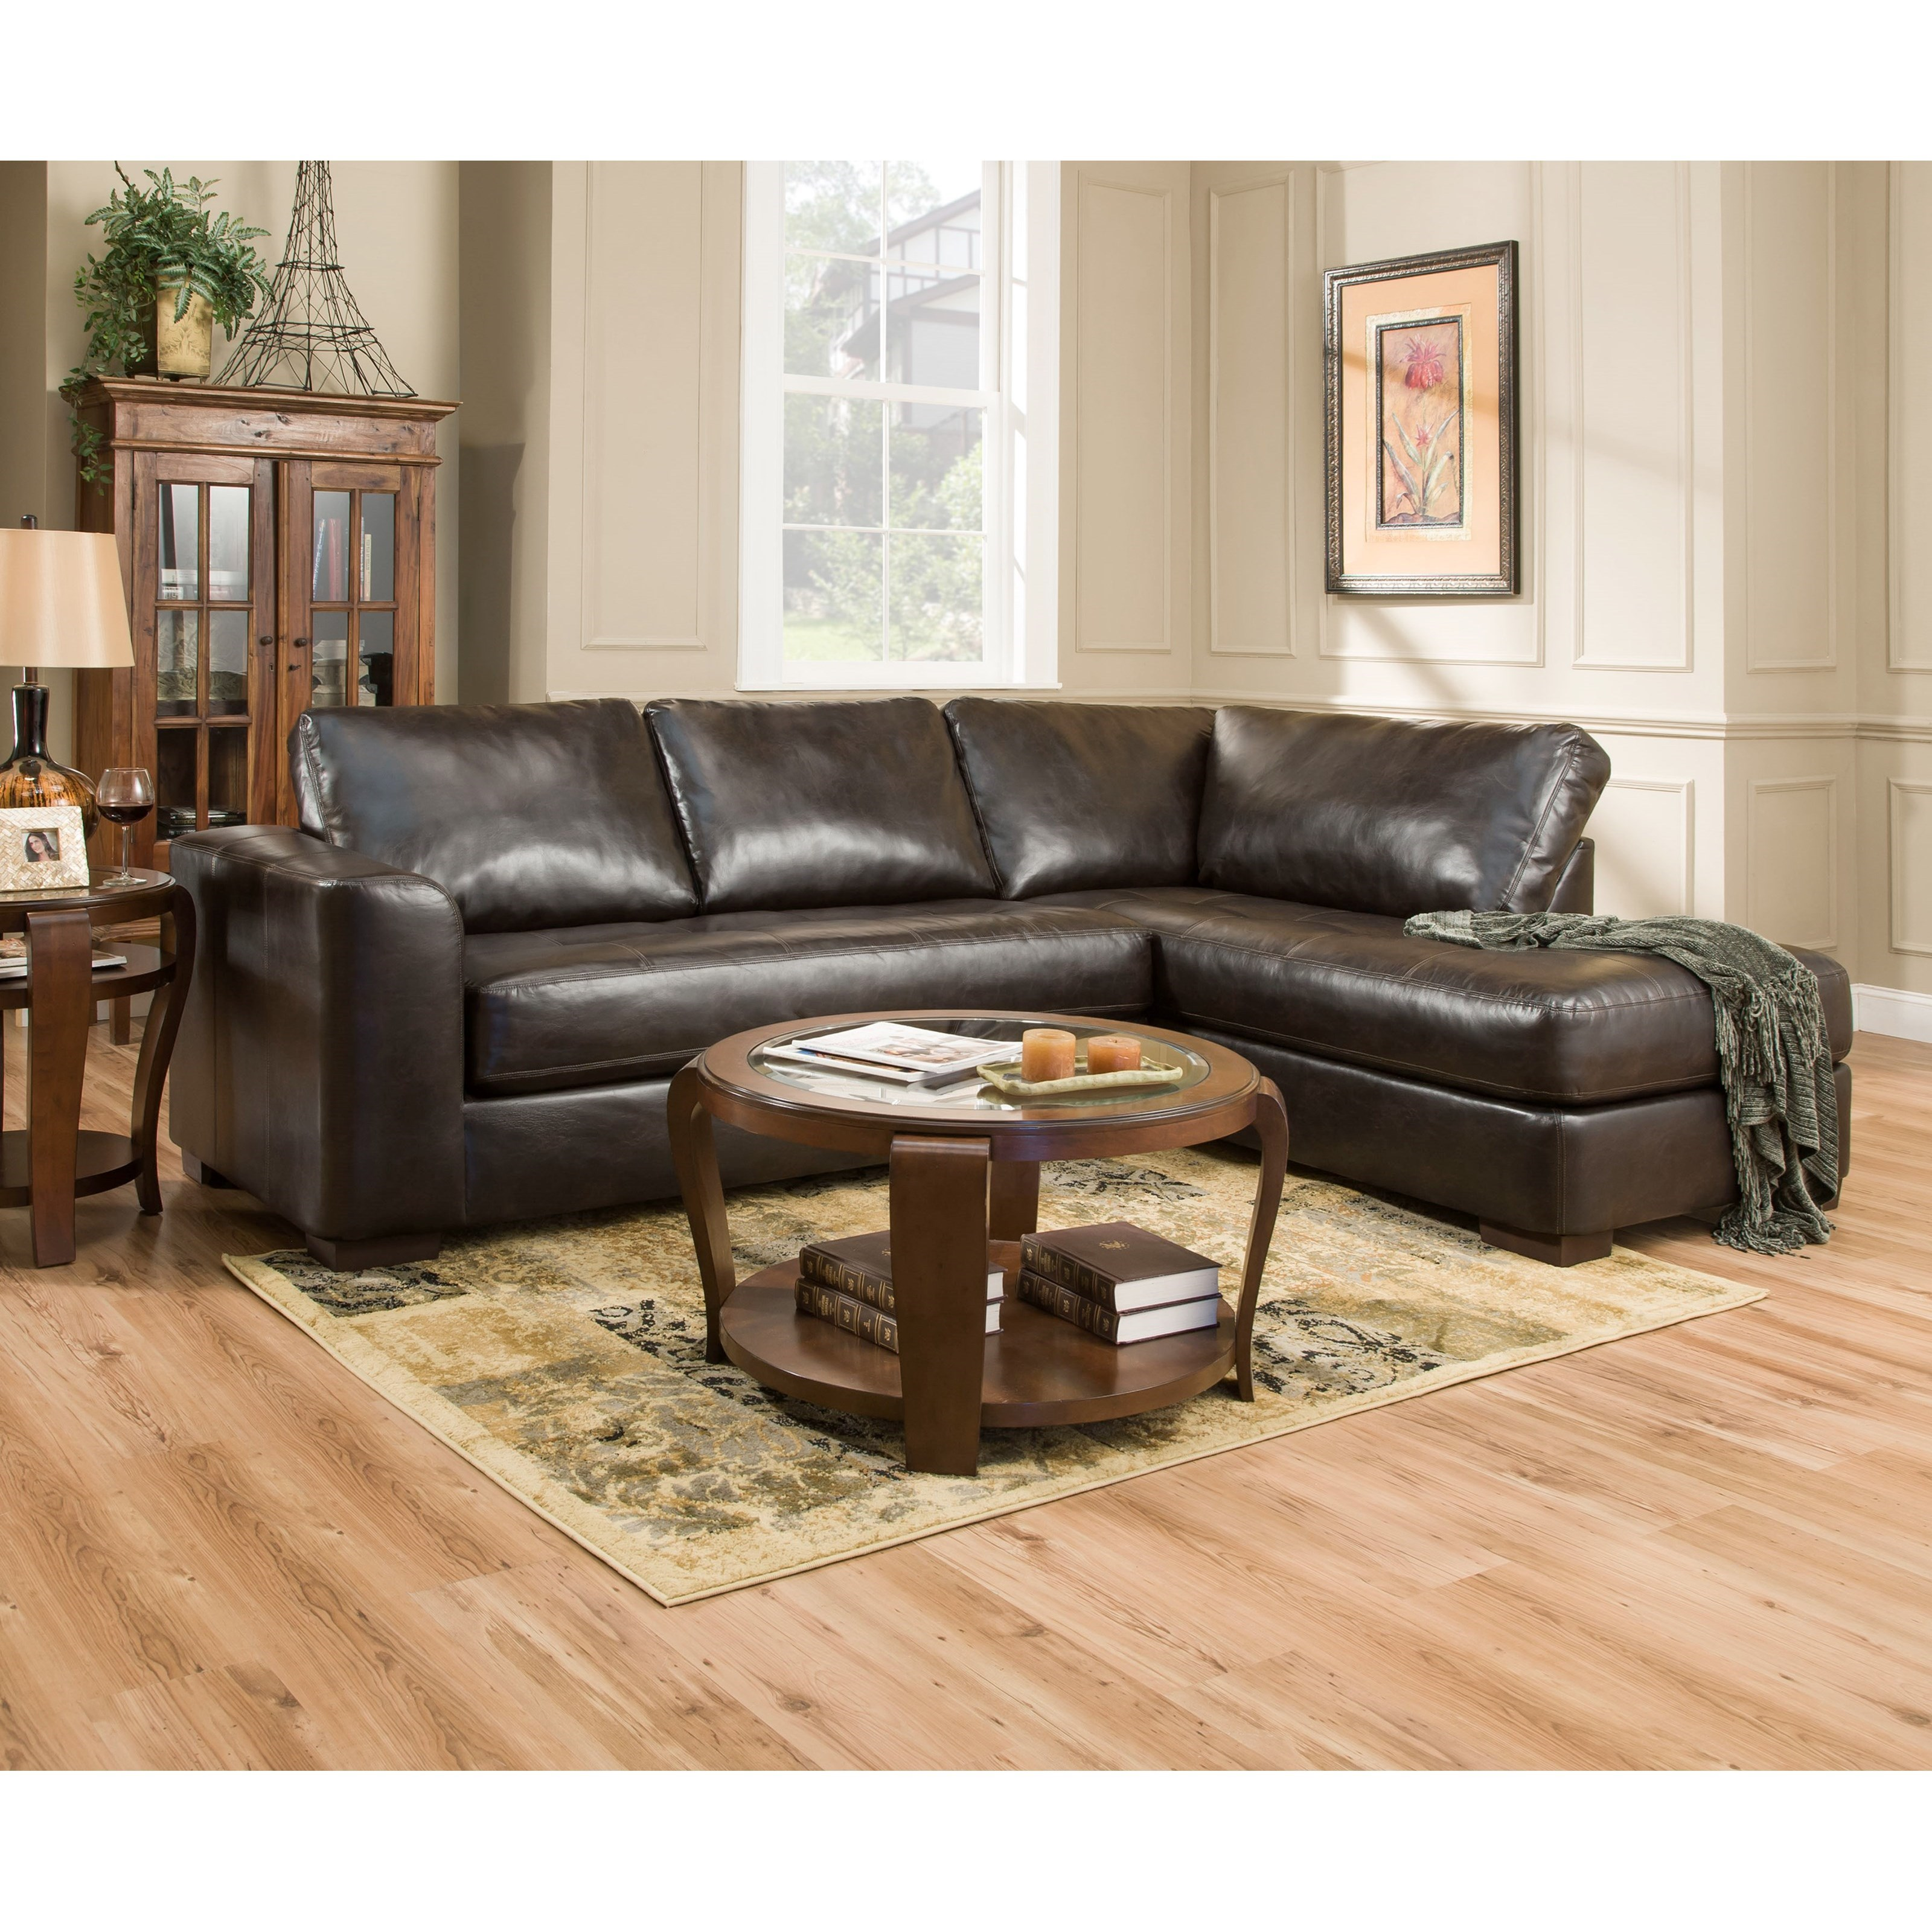 Simmons Upholstery 4558 Sectional Sofa With Chaise Dunk